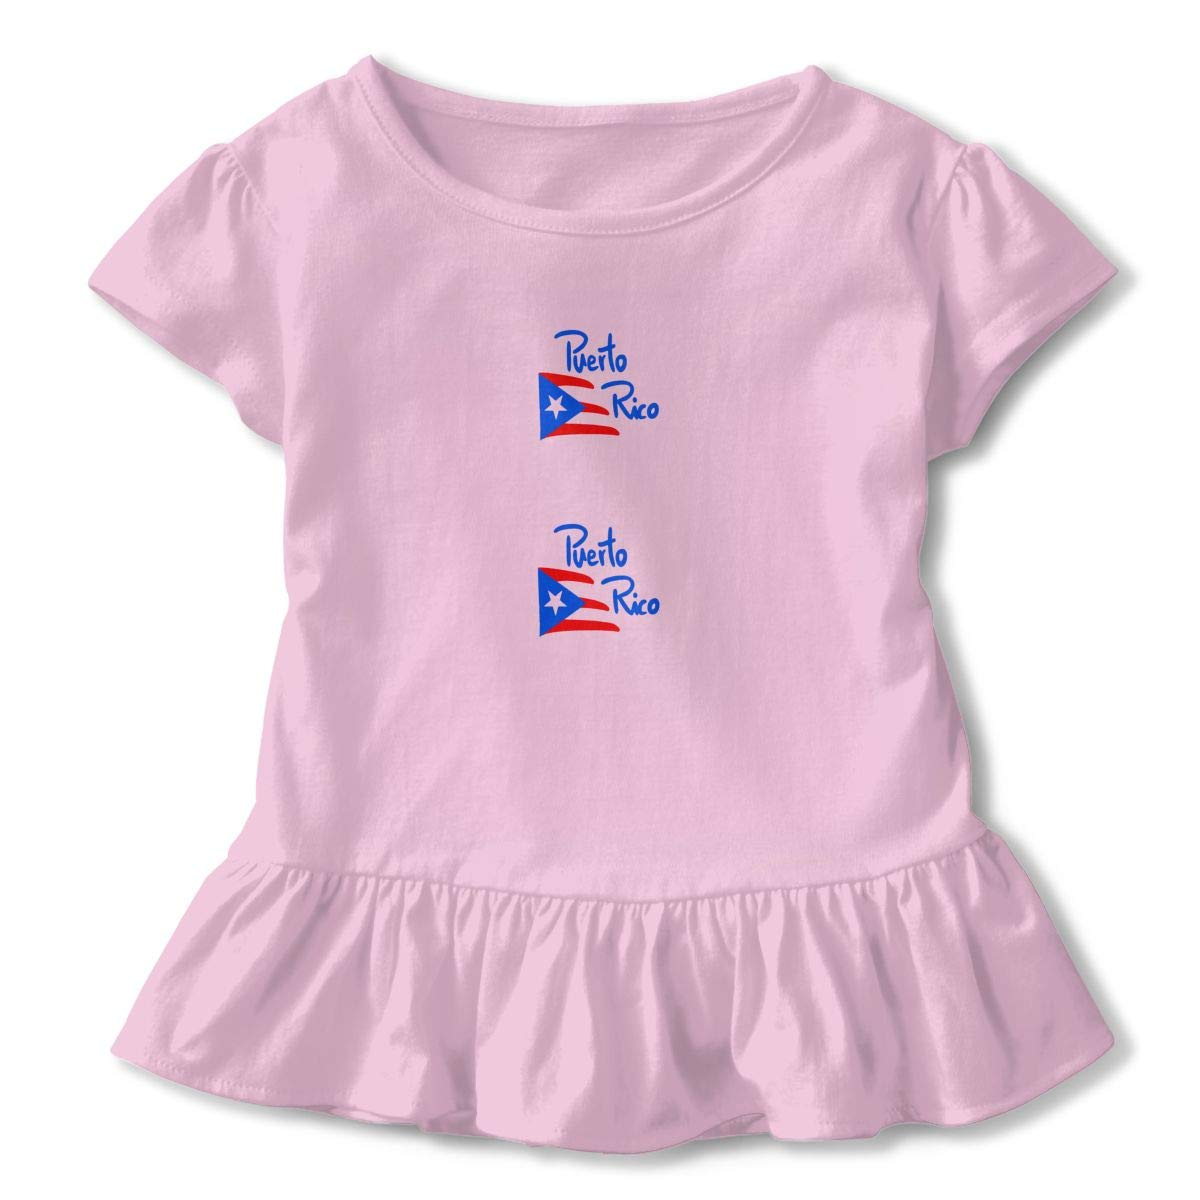 Puerto Rico Toddler Girls Round Neck Ruffle Short Sleeves Top Tunic for Home School As Gift for Children Pink